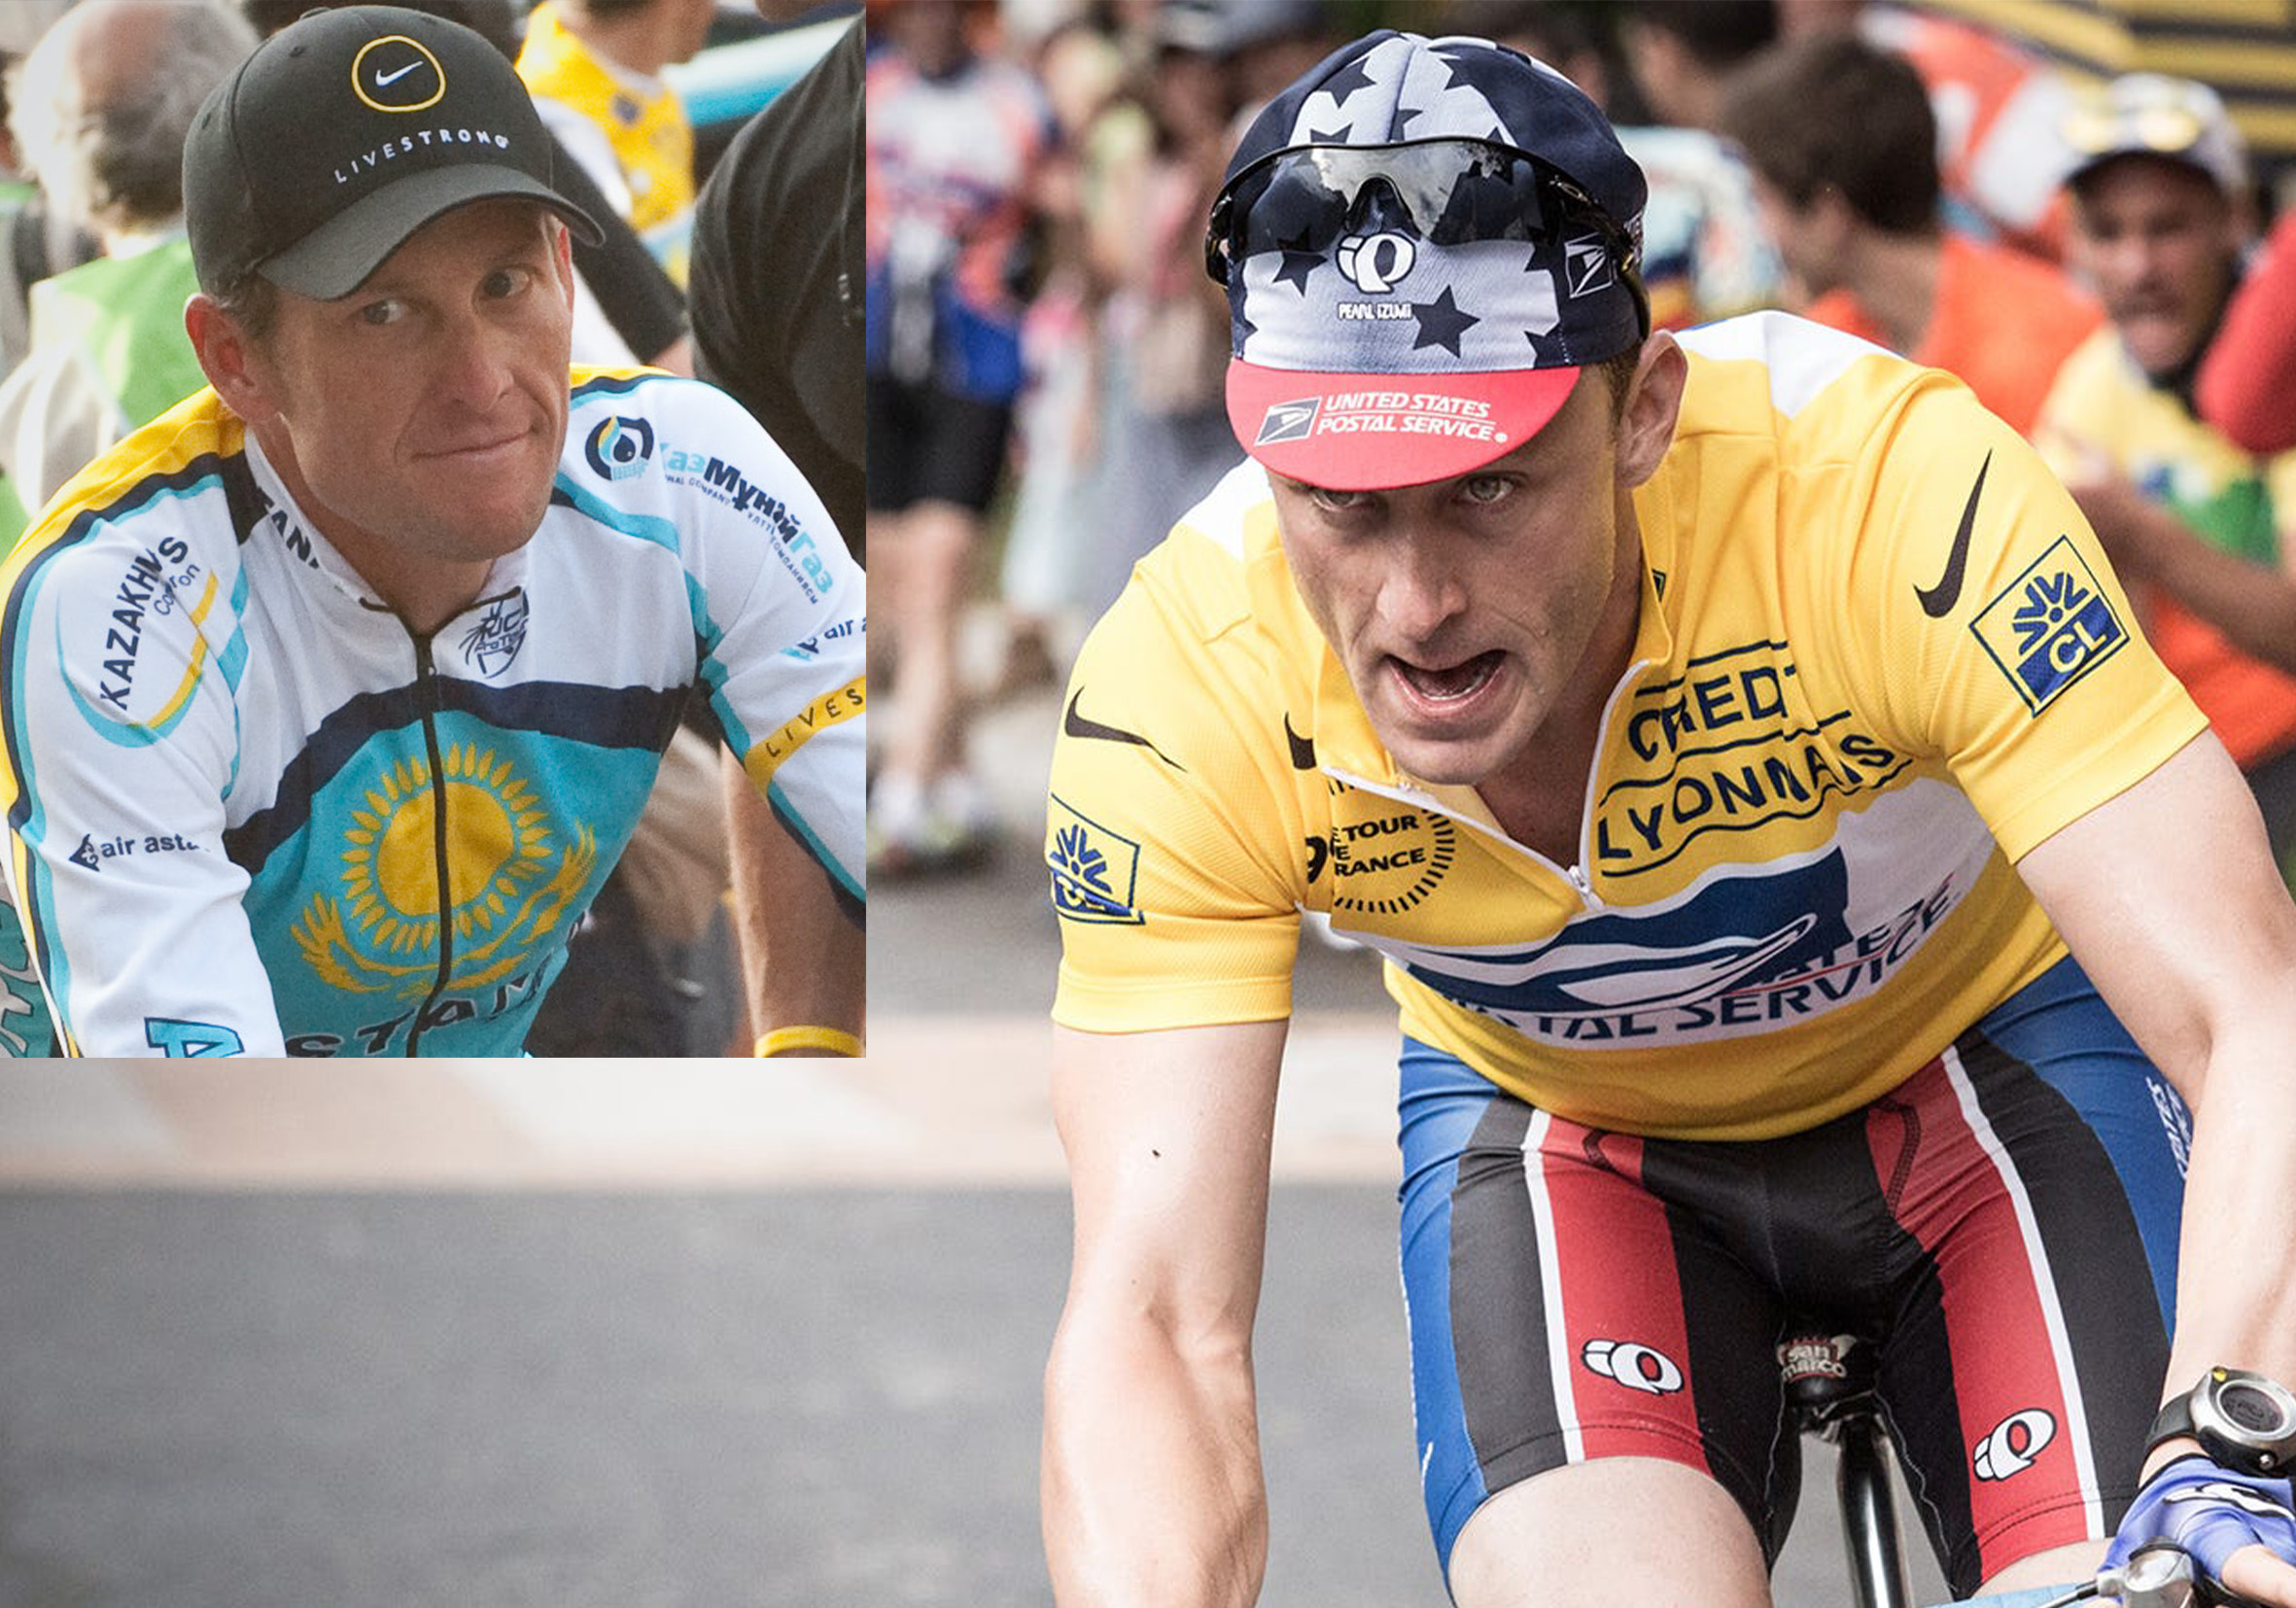 lance armstrong ben foster 20 Actors Who Looked Exactly Like The Real People They Played